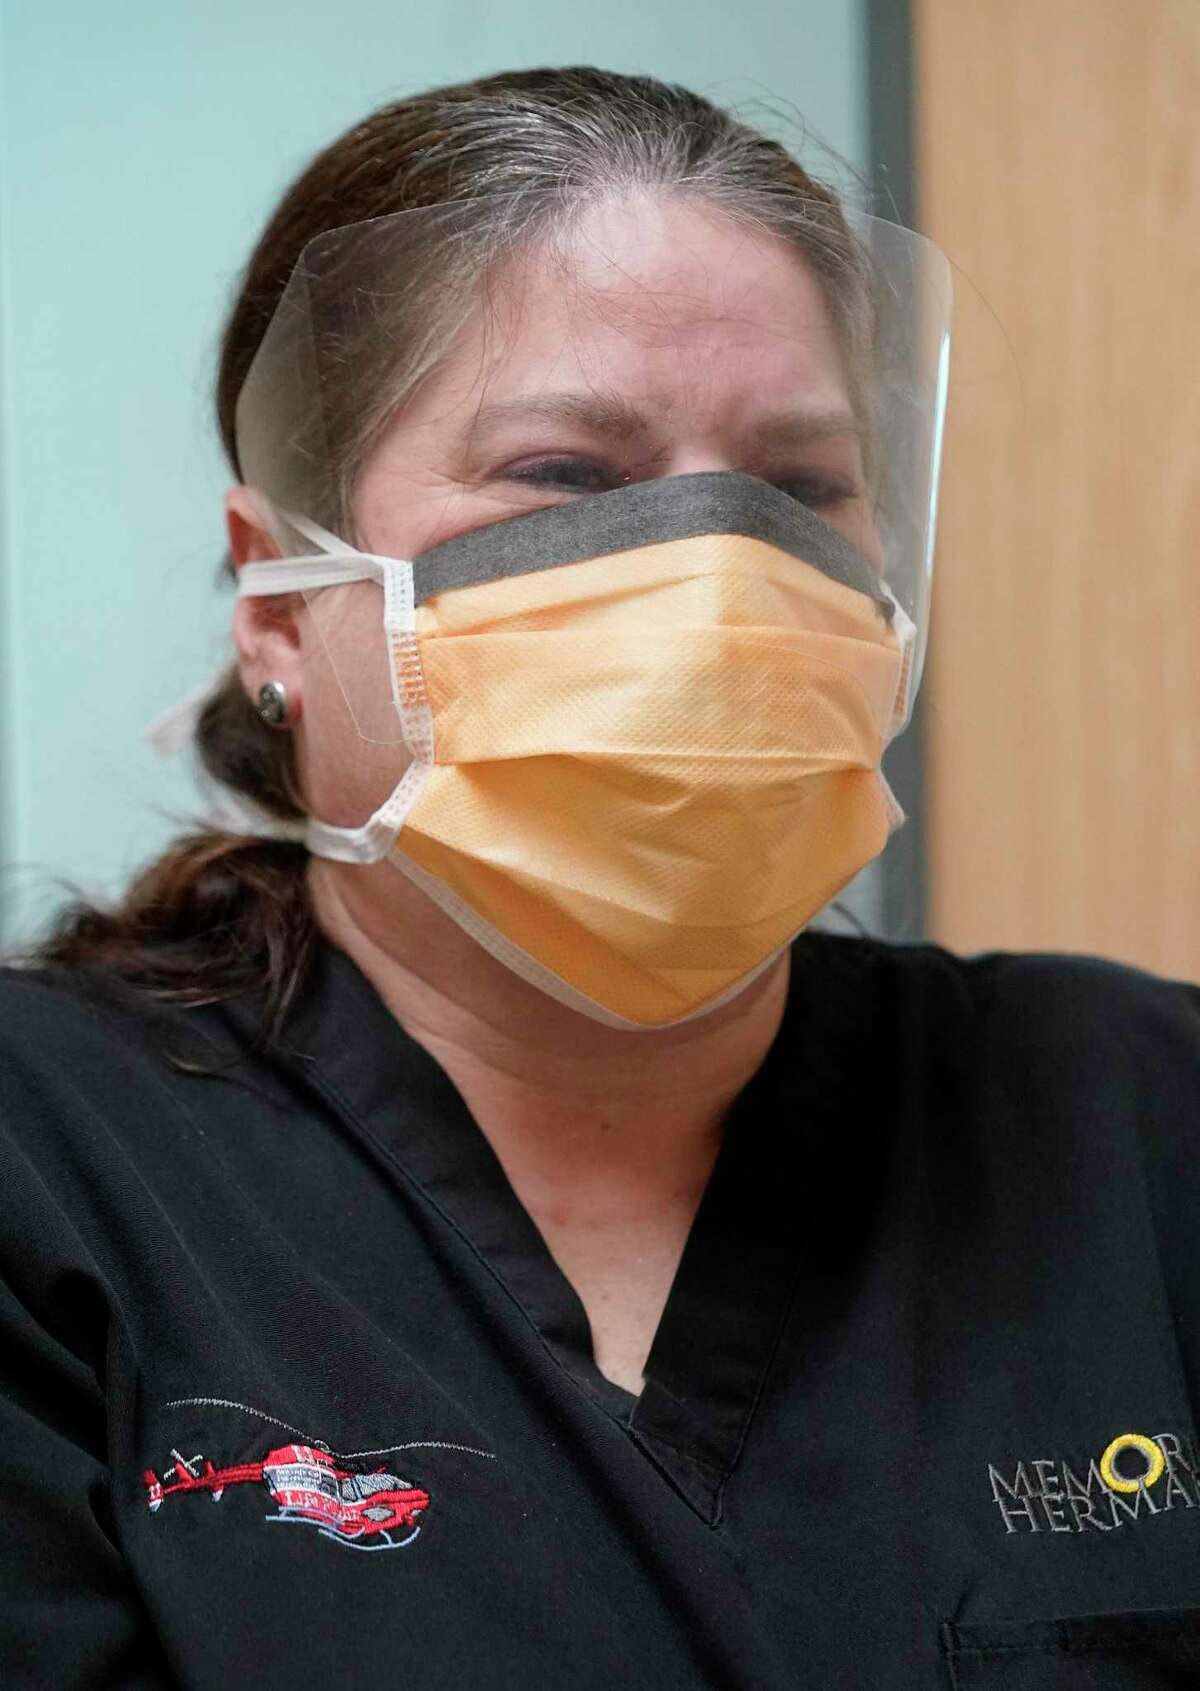 Amy Lopez, RN emergency management coordinator, demonstrates a face shield that is part of the protective equipment that would be worn in a negative pressure patient room at Memorial Hermann Memorial City, 929 Gessner, Tuesday, March 17, 2020, in Houston.